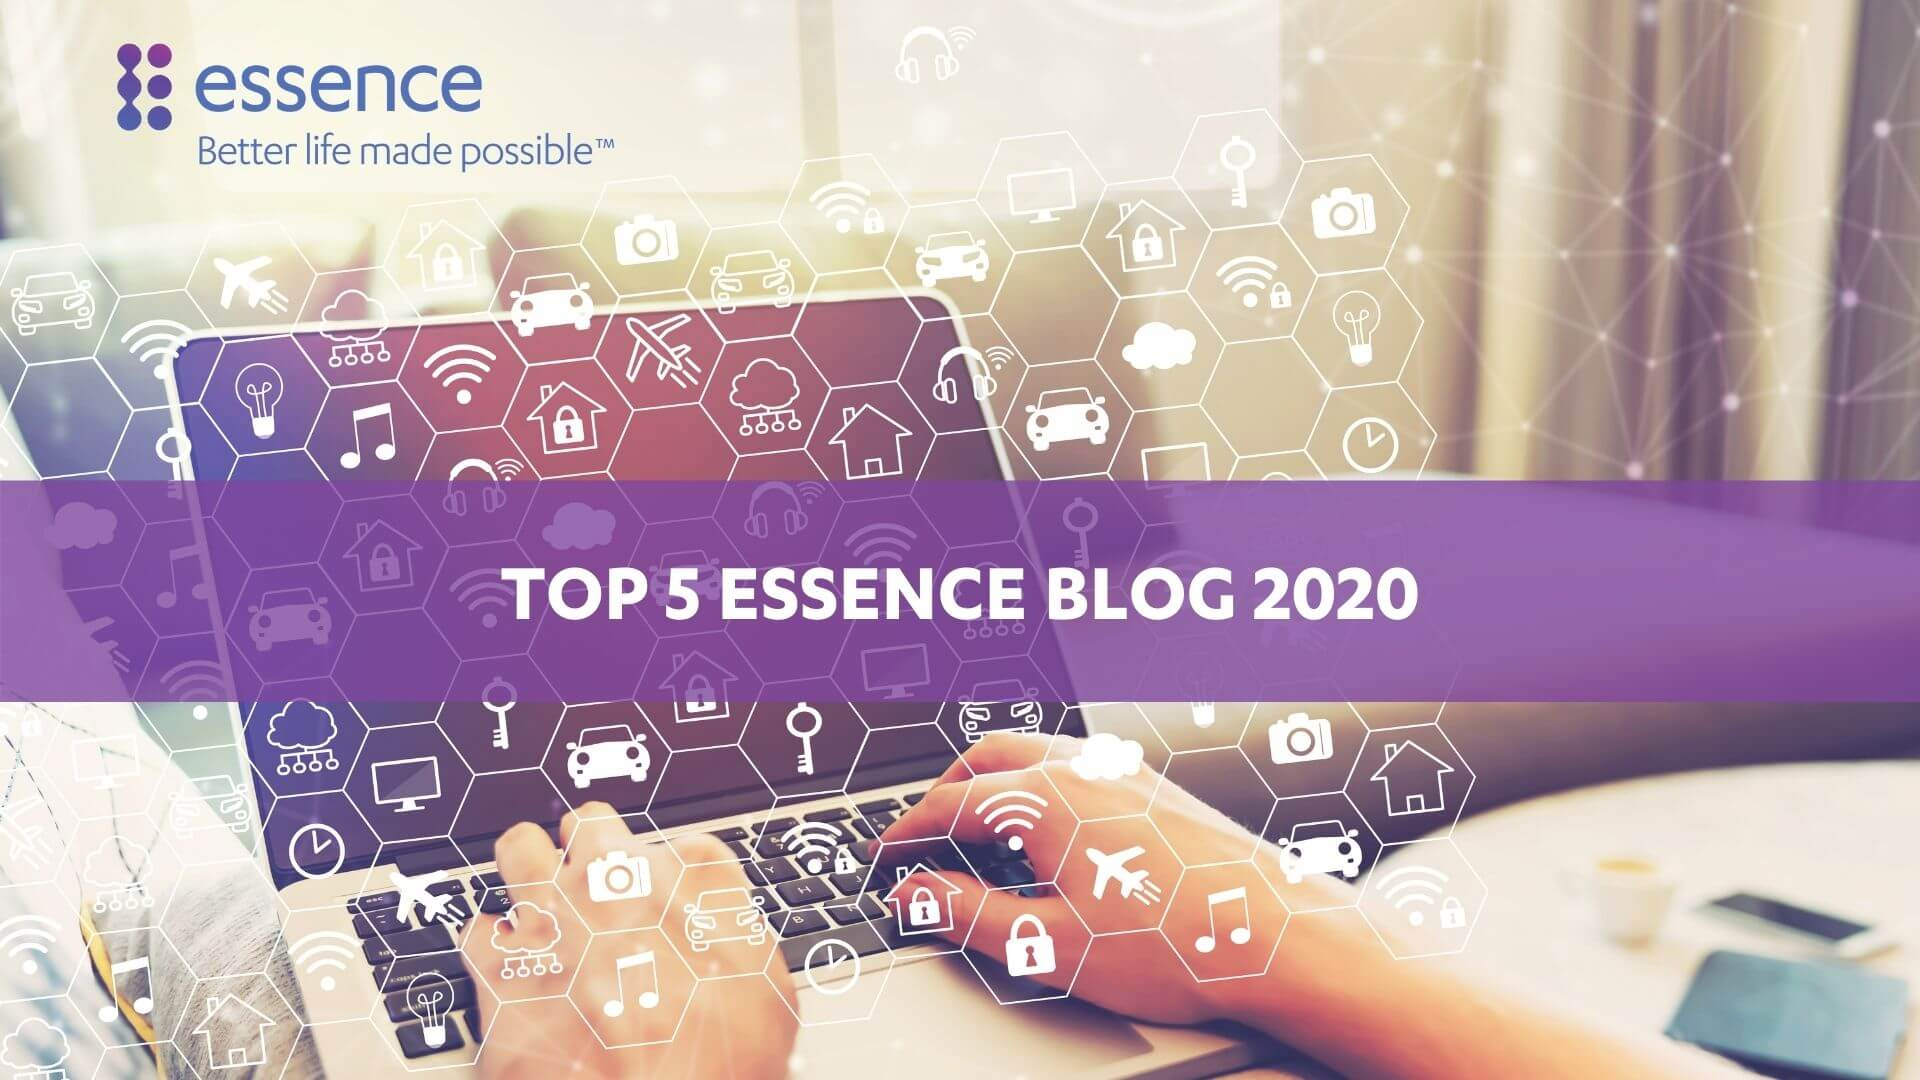 Top 5 Essence Blog 2020